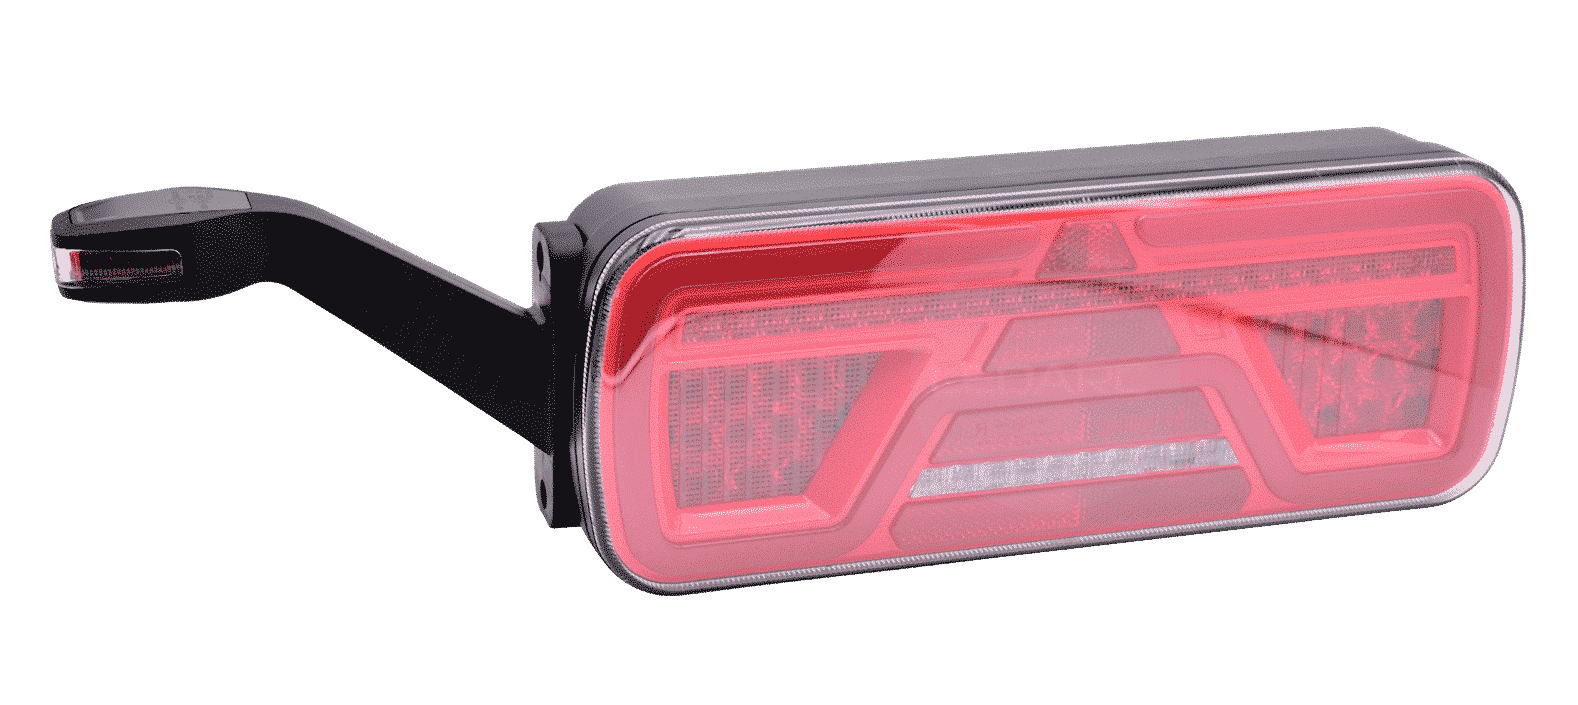 7021 Multifonction LED Trailer Lamp from LEDARC LT